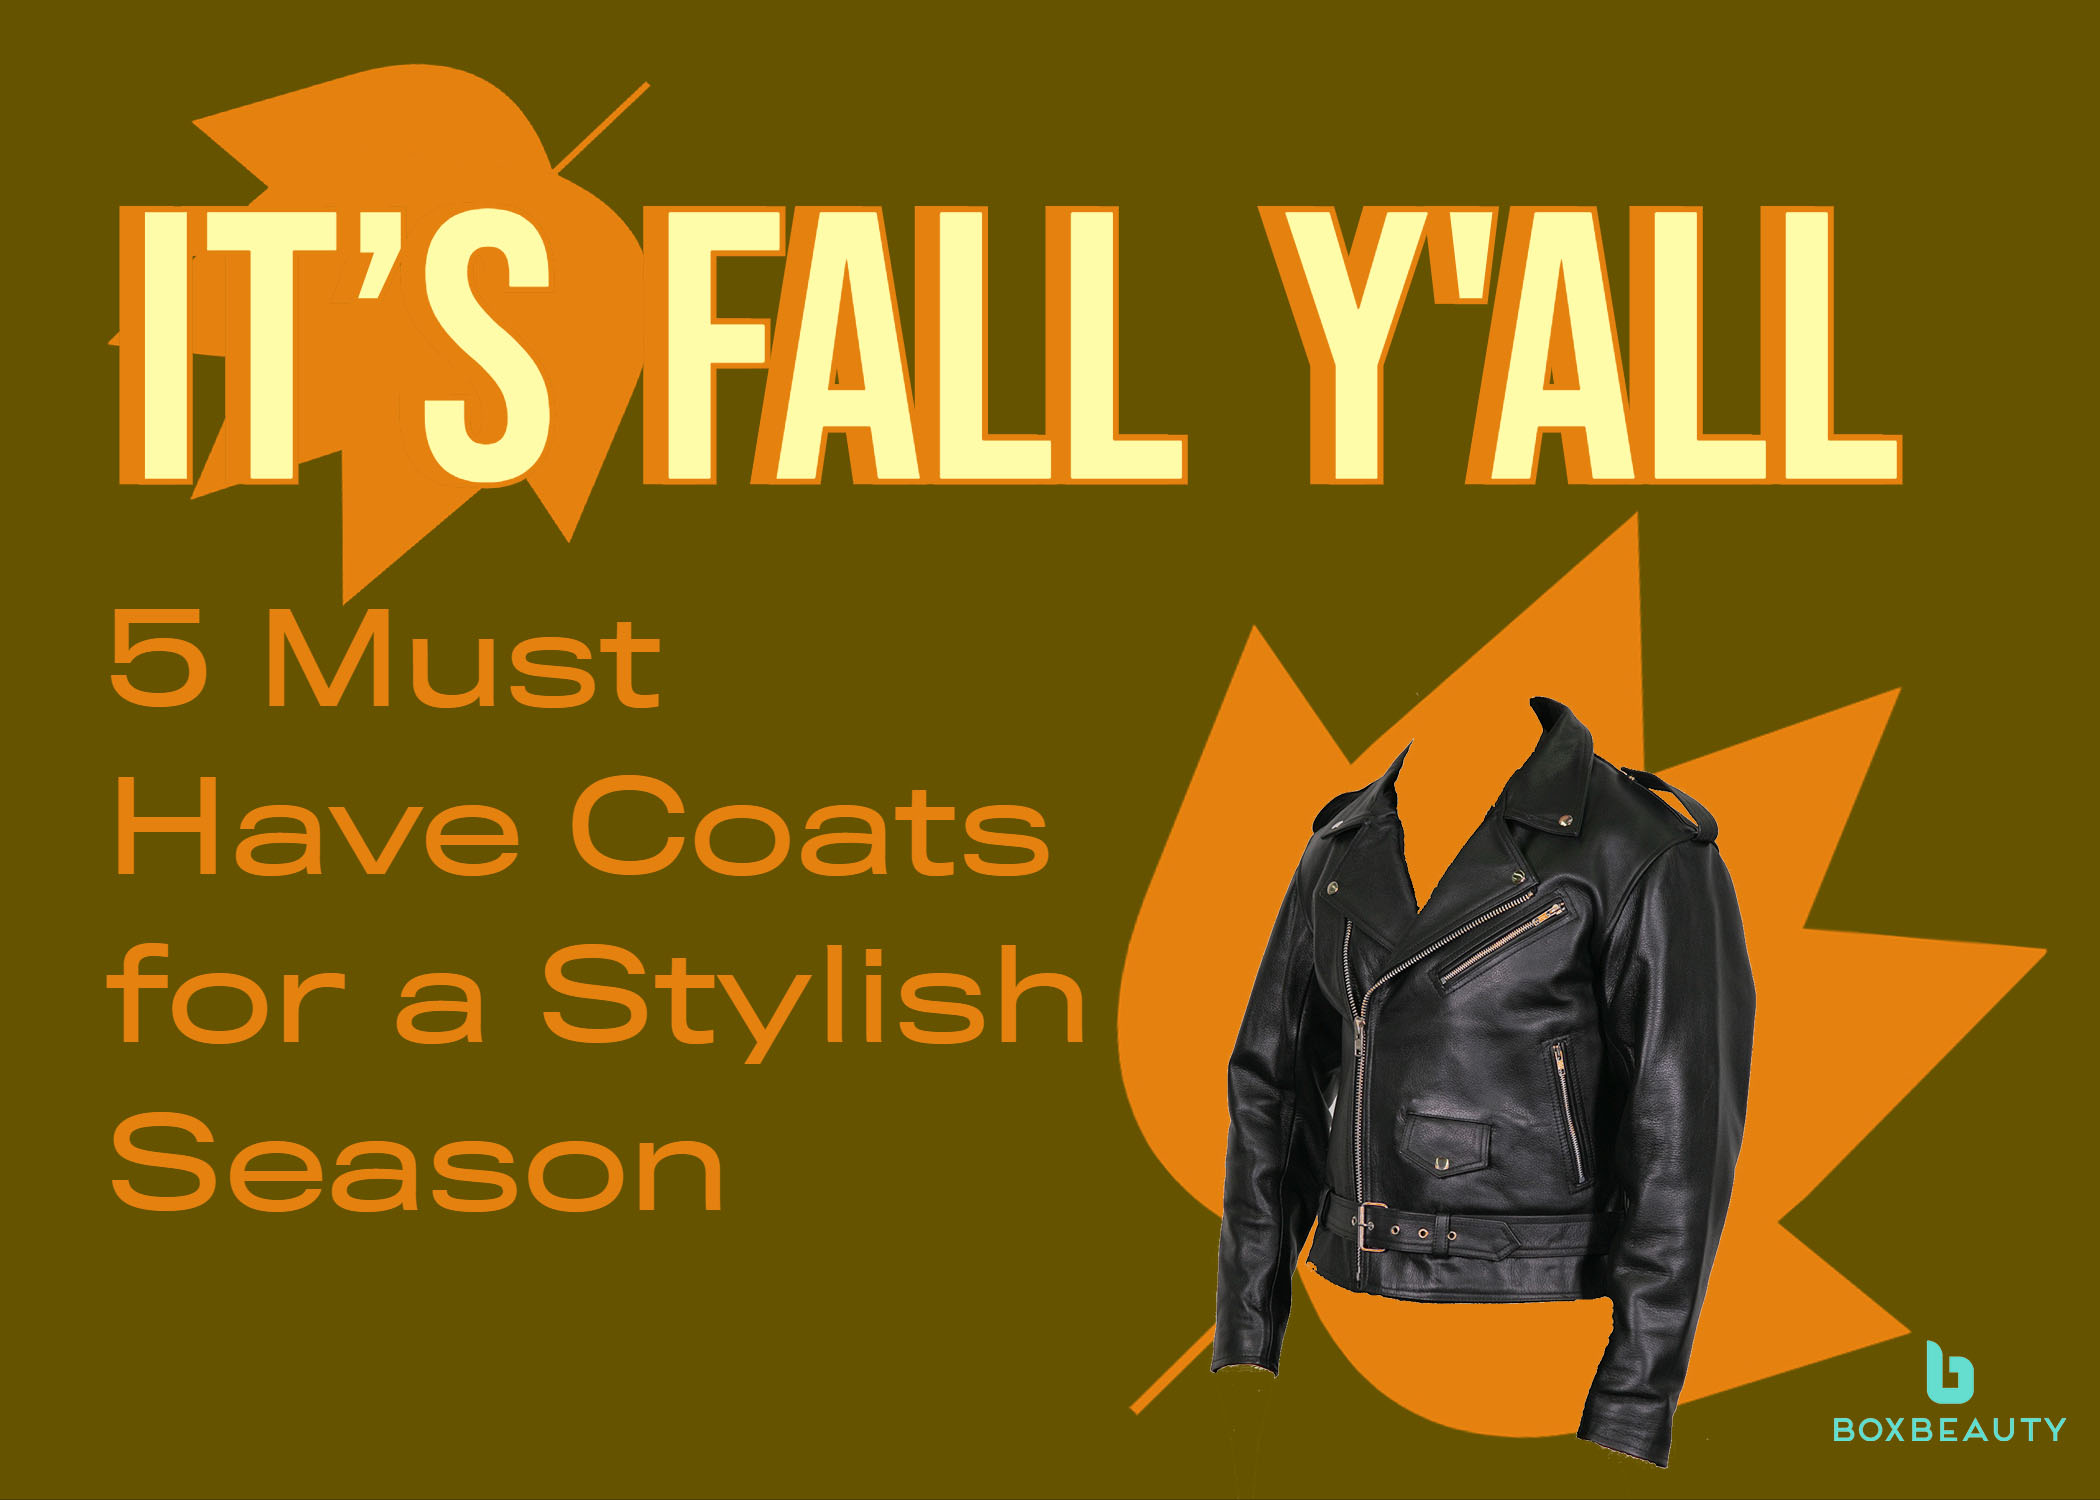 It's Fall Y'all: 5 Must Have Coats for a Stylish Fall